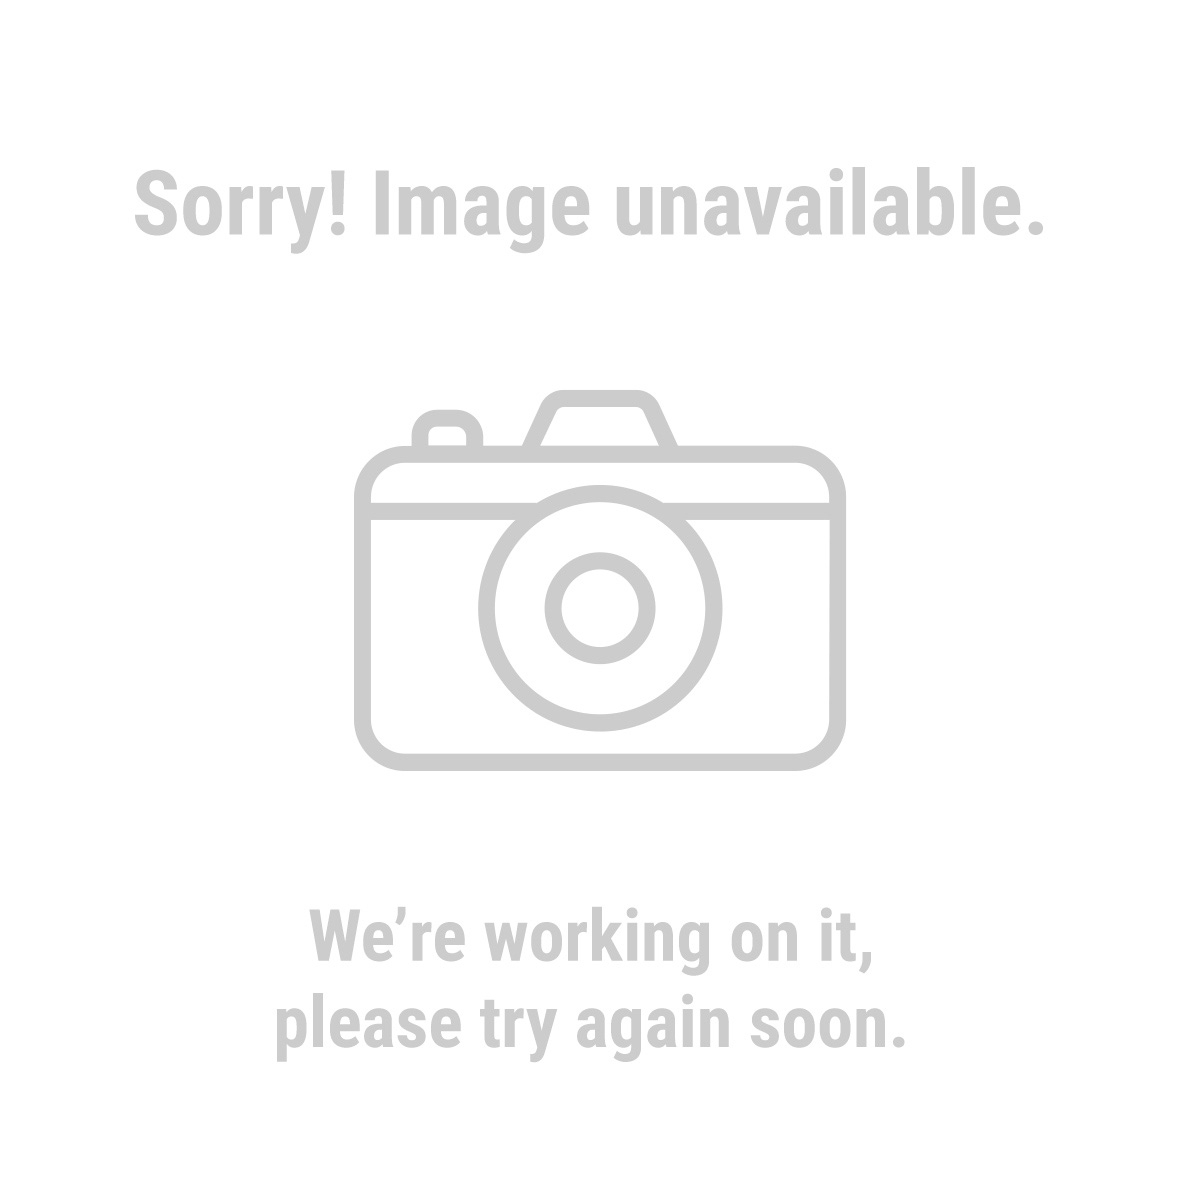 "Central Forge 97150 Pack of 2 1/4"" Eye and Eye Swivel"